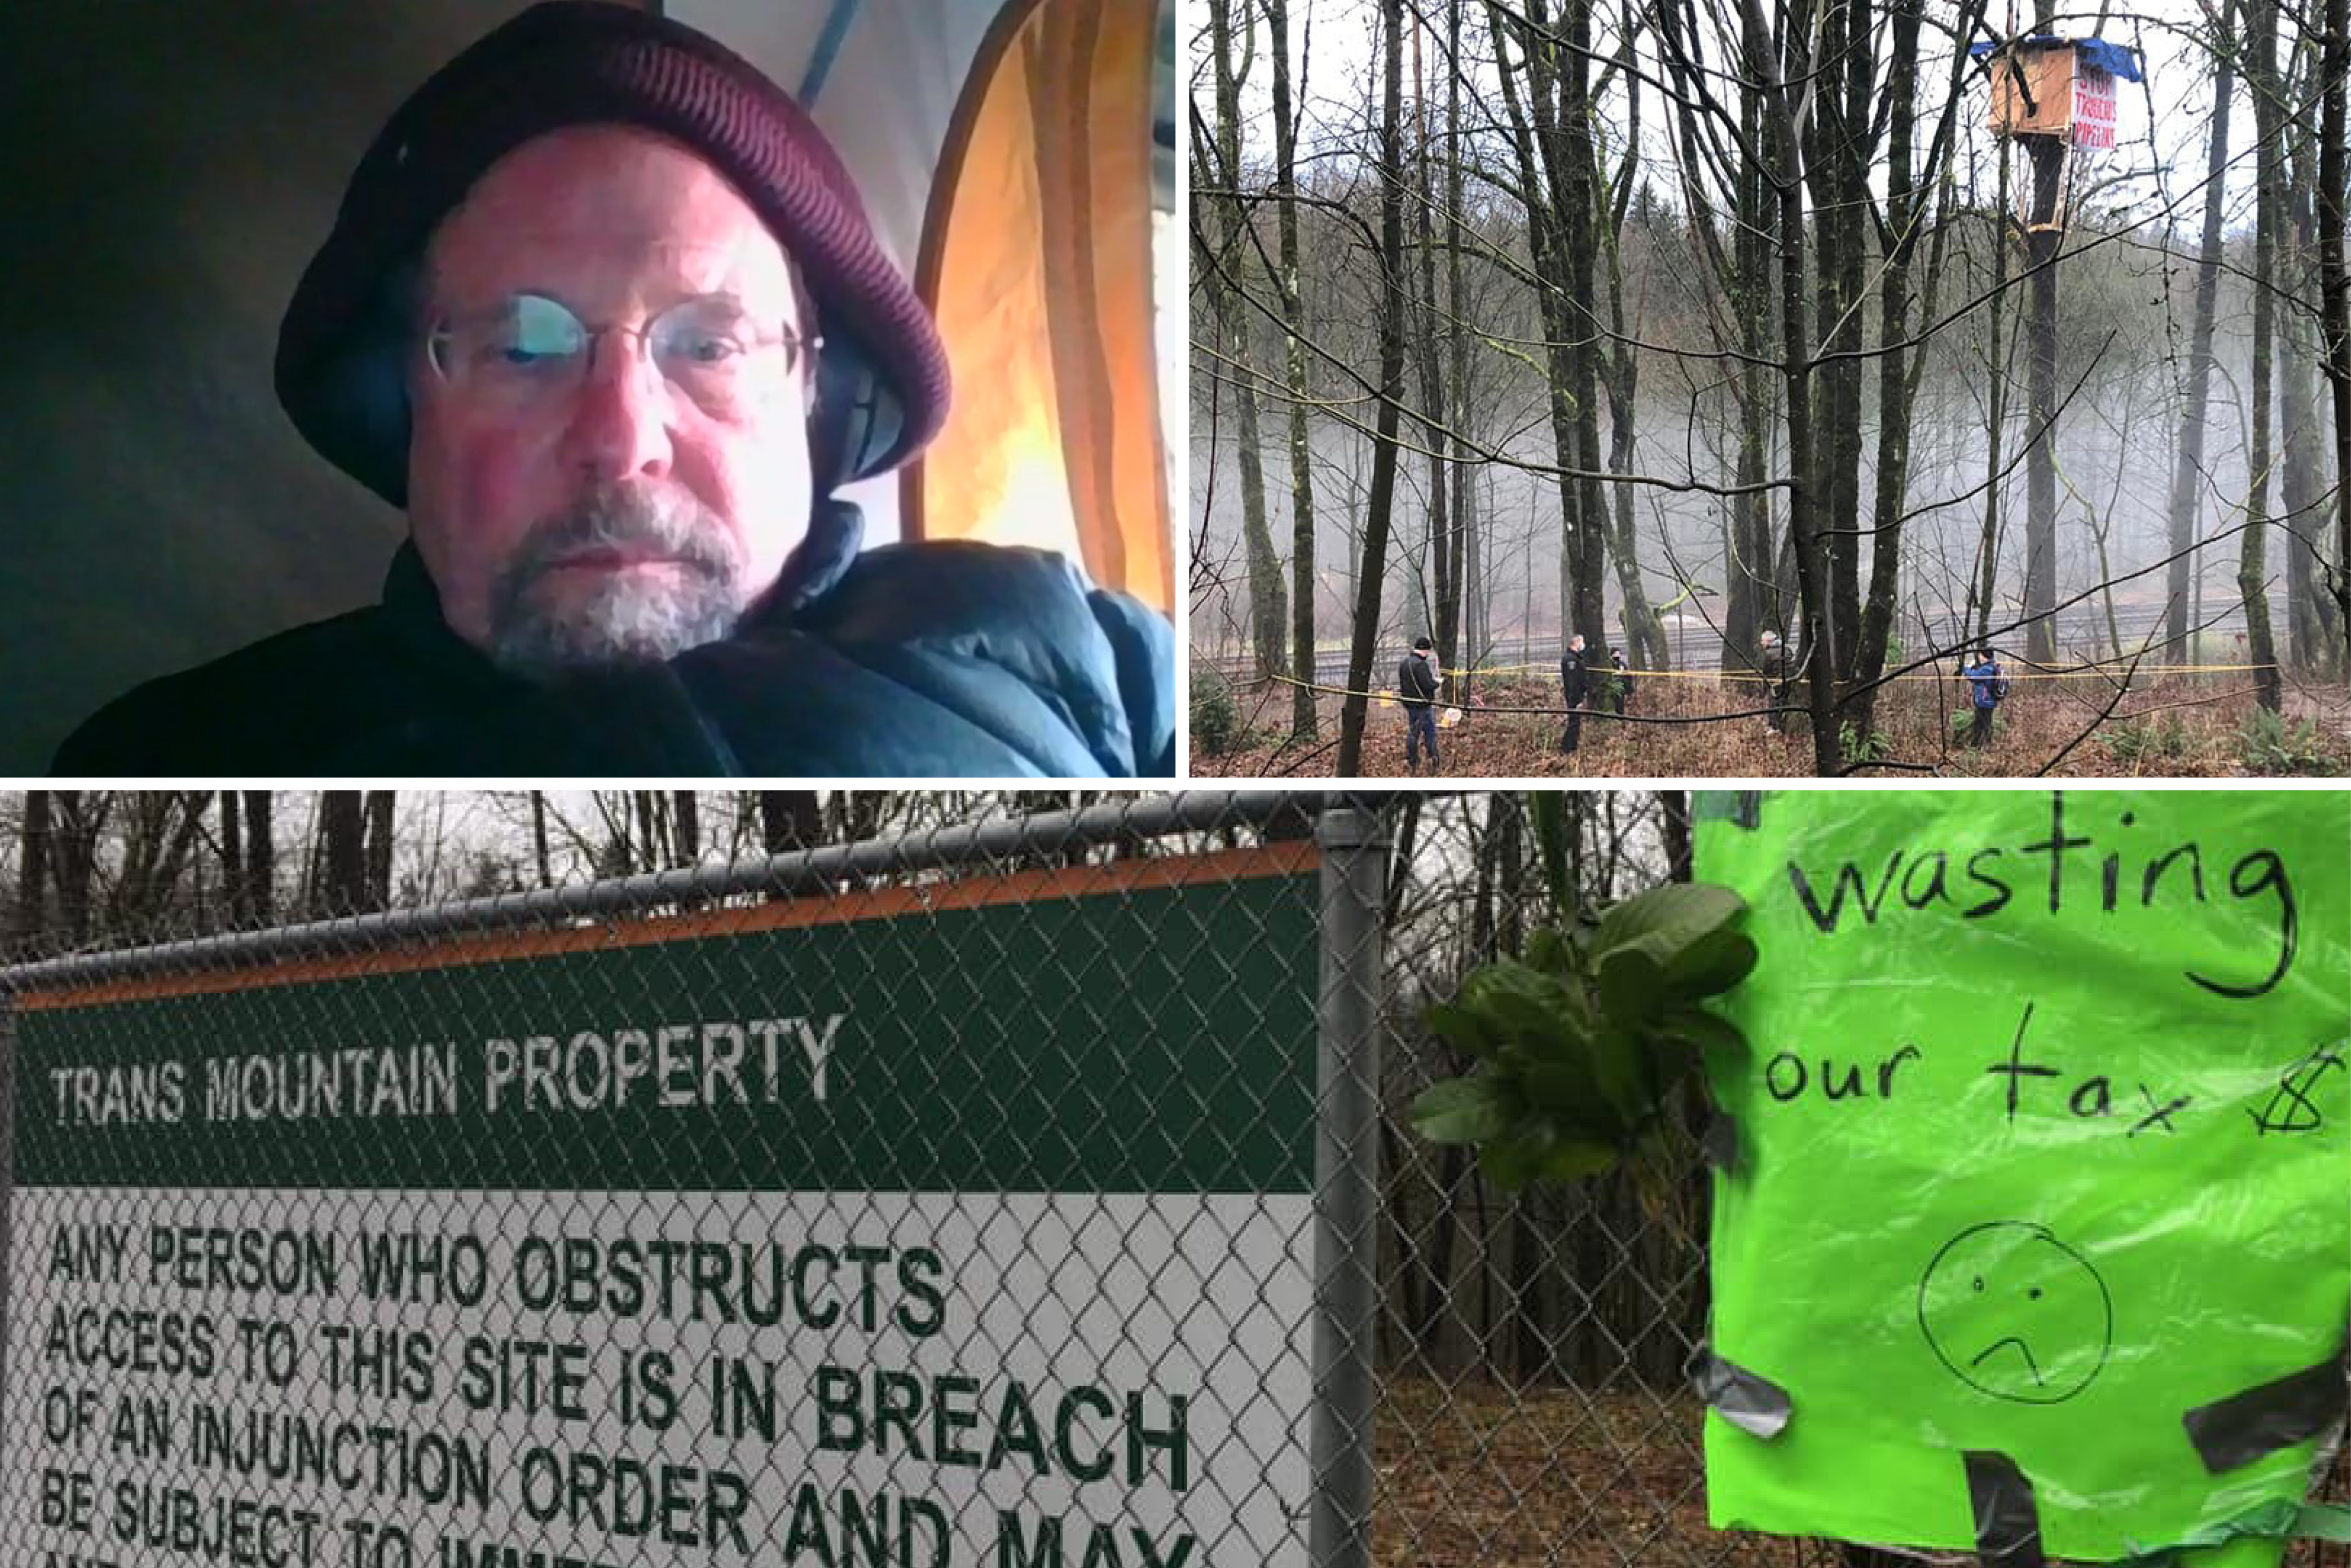 Physician challenges Trans Mountain pipeline in court after protest site demolished